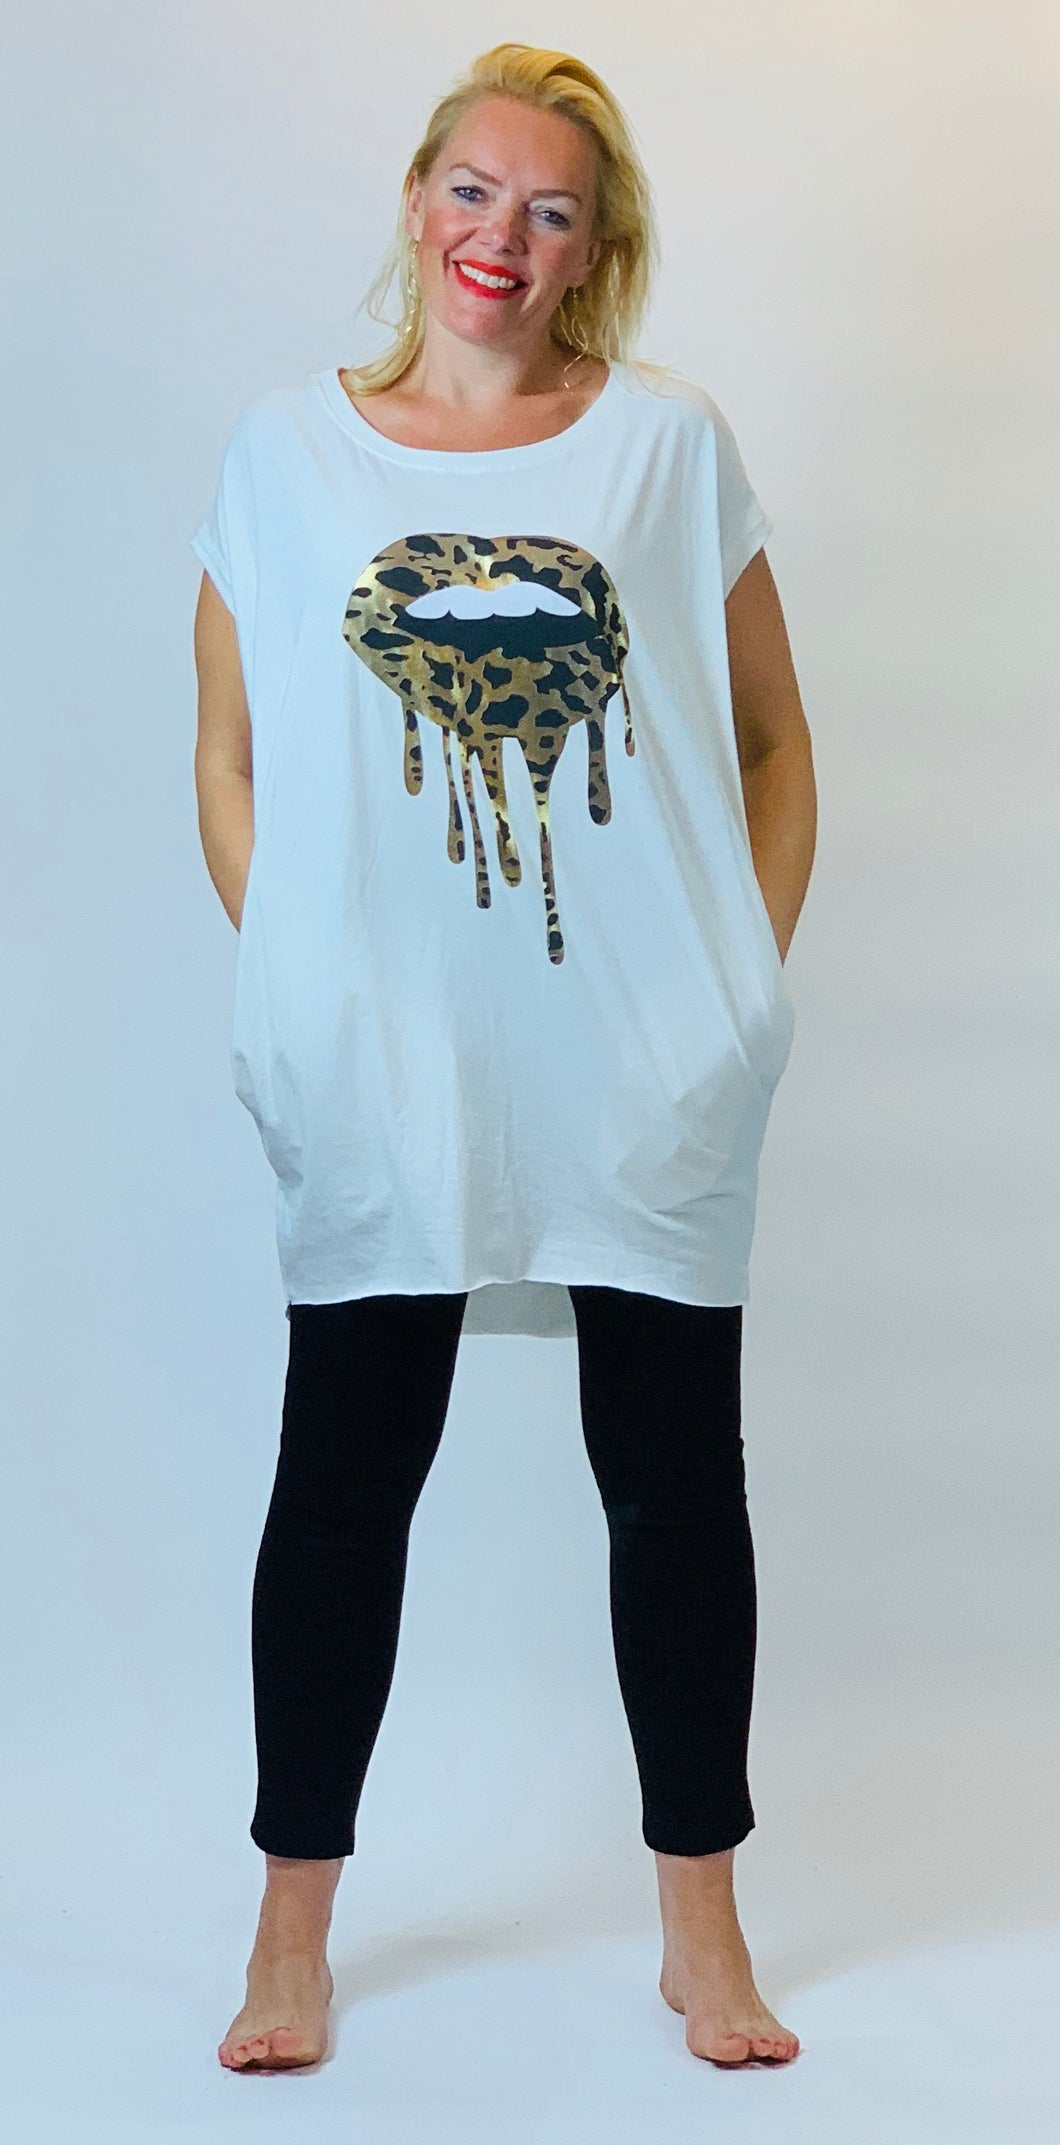 Dripping Leopard Lips Tshirt - chichappensboutique